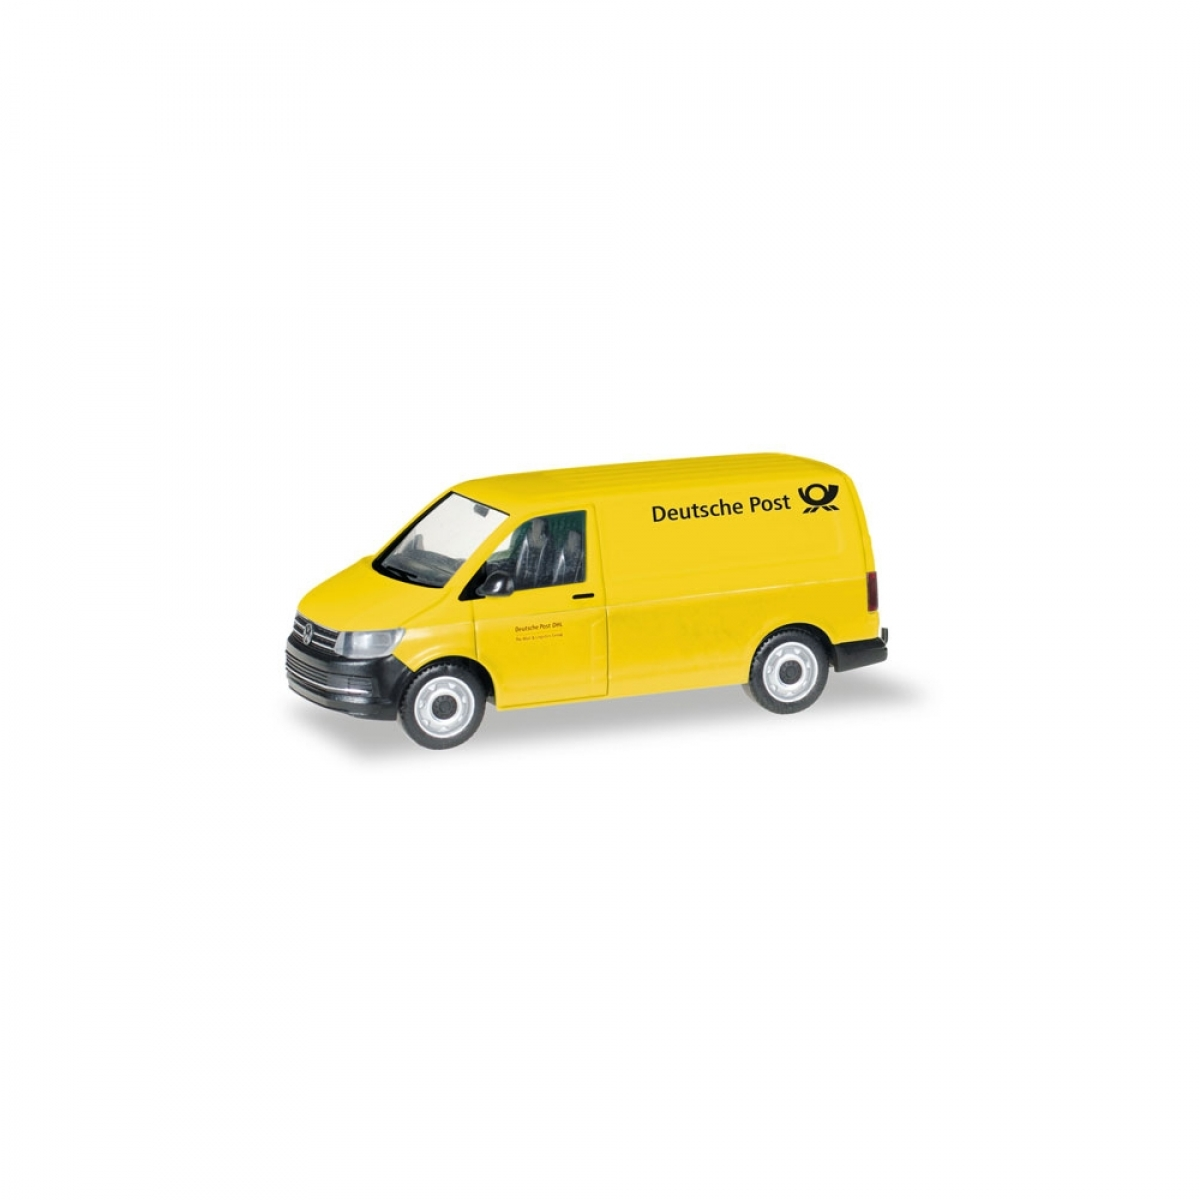 Herpa 093026 VW T6 Kasten Deutsche Post